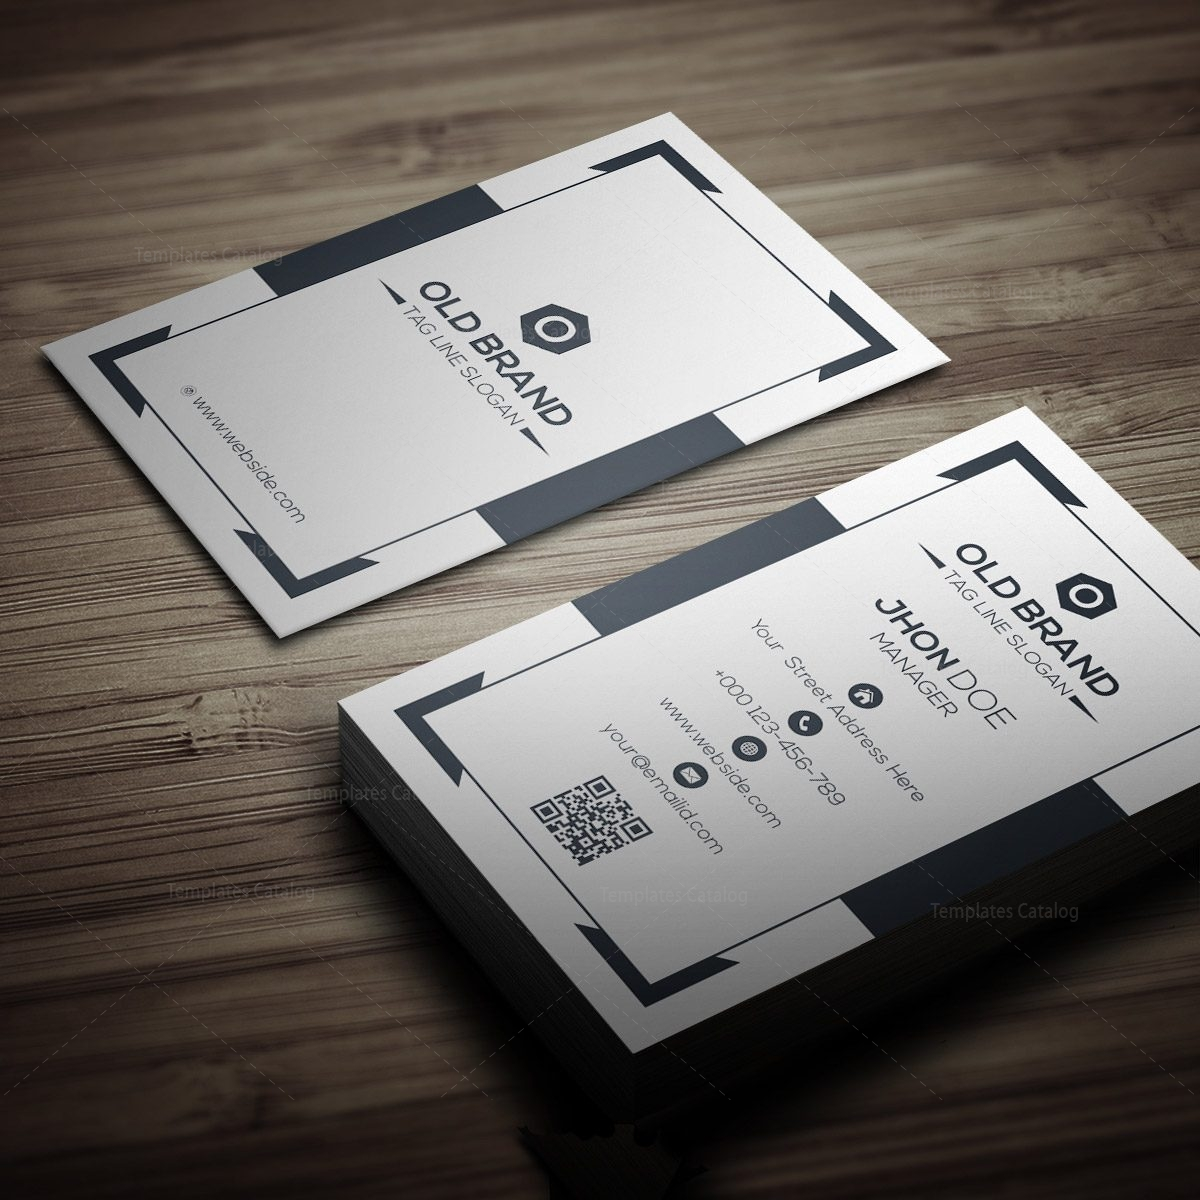 Classic Vertical Business Card Template Template Catalog - Business card vertical template